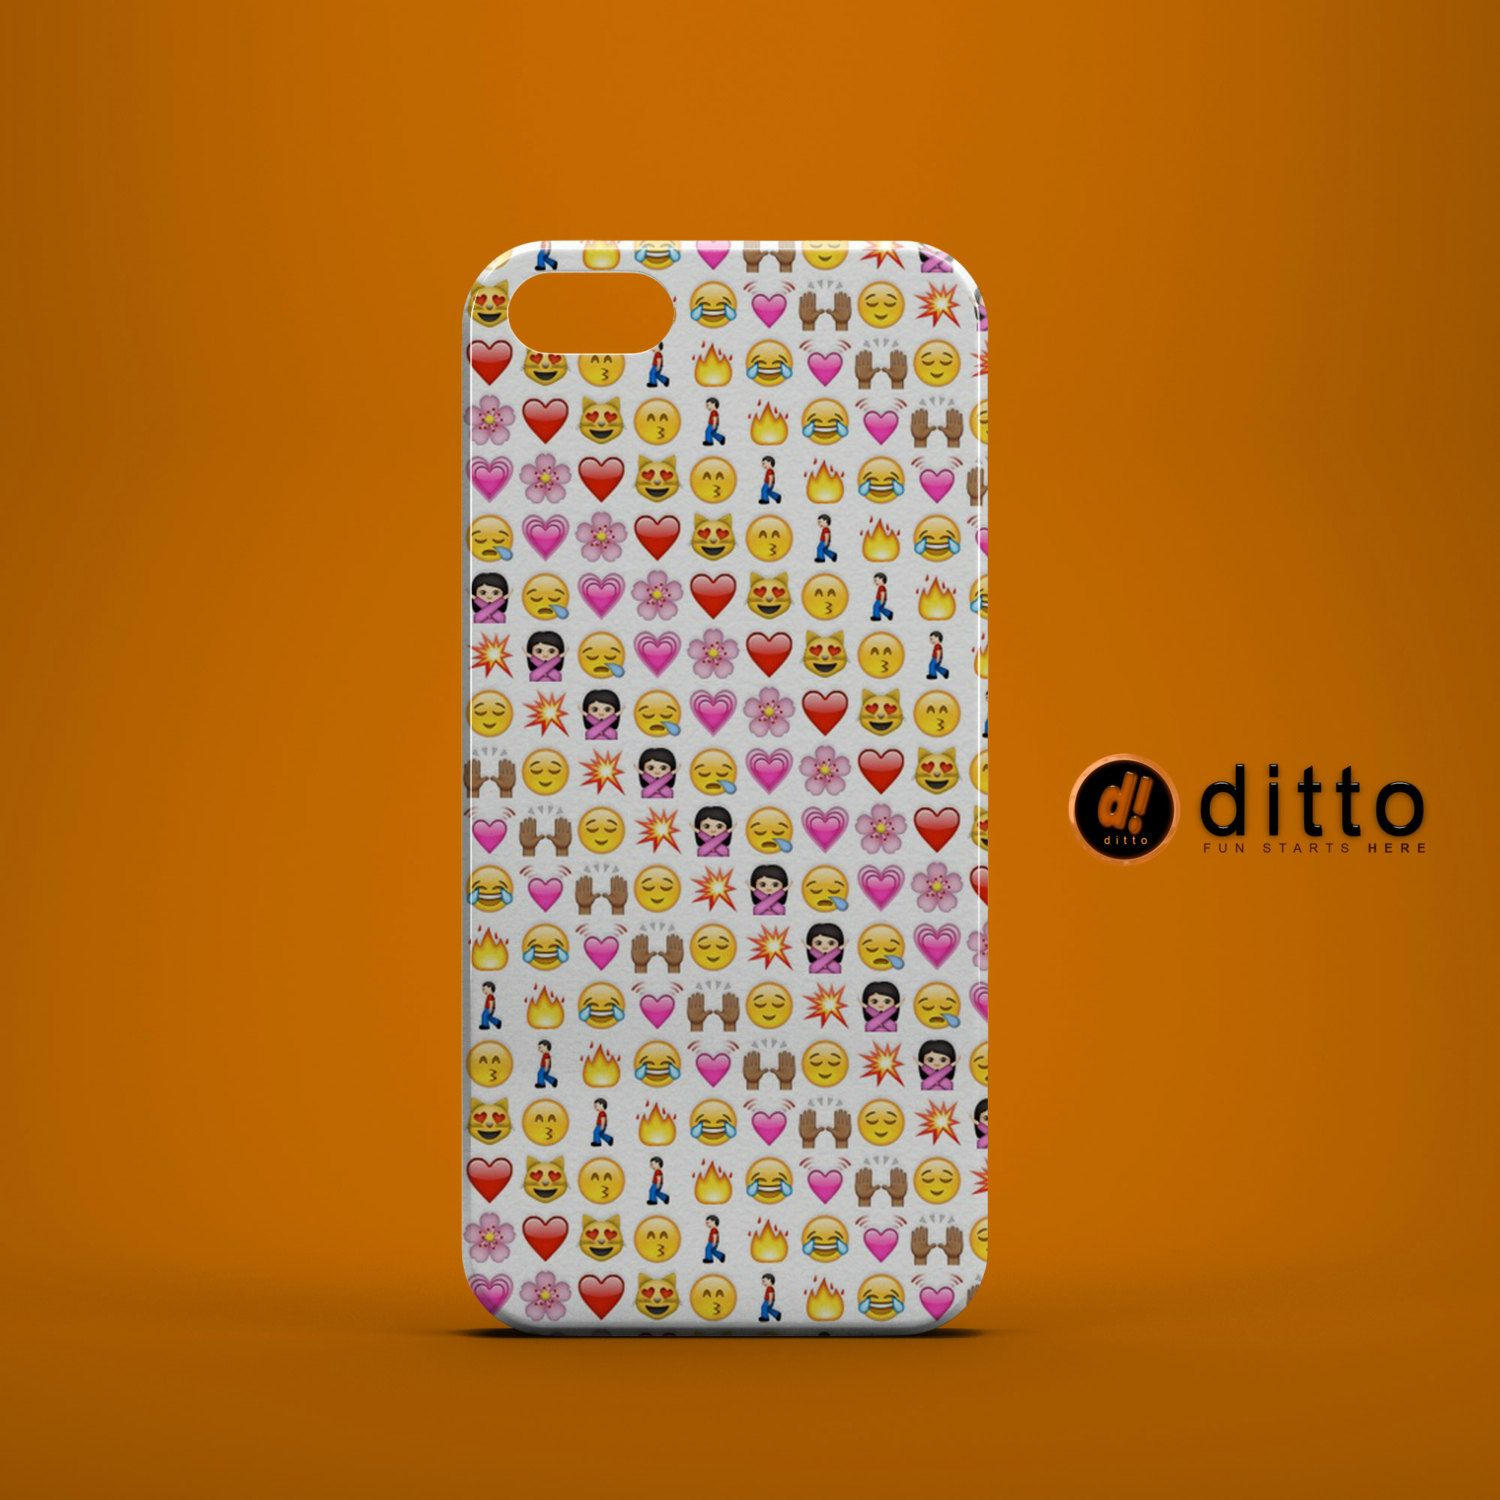 Emoji Love Design Custom Case By Ditto For Iphone 6 6 Plus Iphone 5 5s 5c Iphone 4 4s Samsung Galaxy S3 S4 S5 And Note 2 3 4 Custom Case Emoji Love Iphone